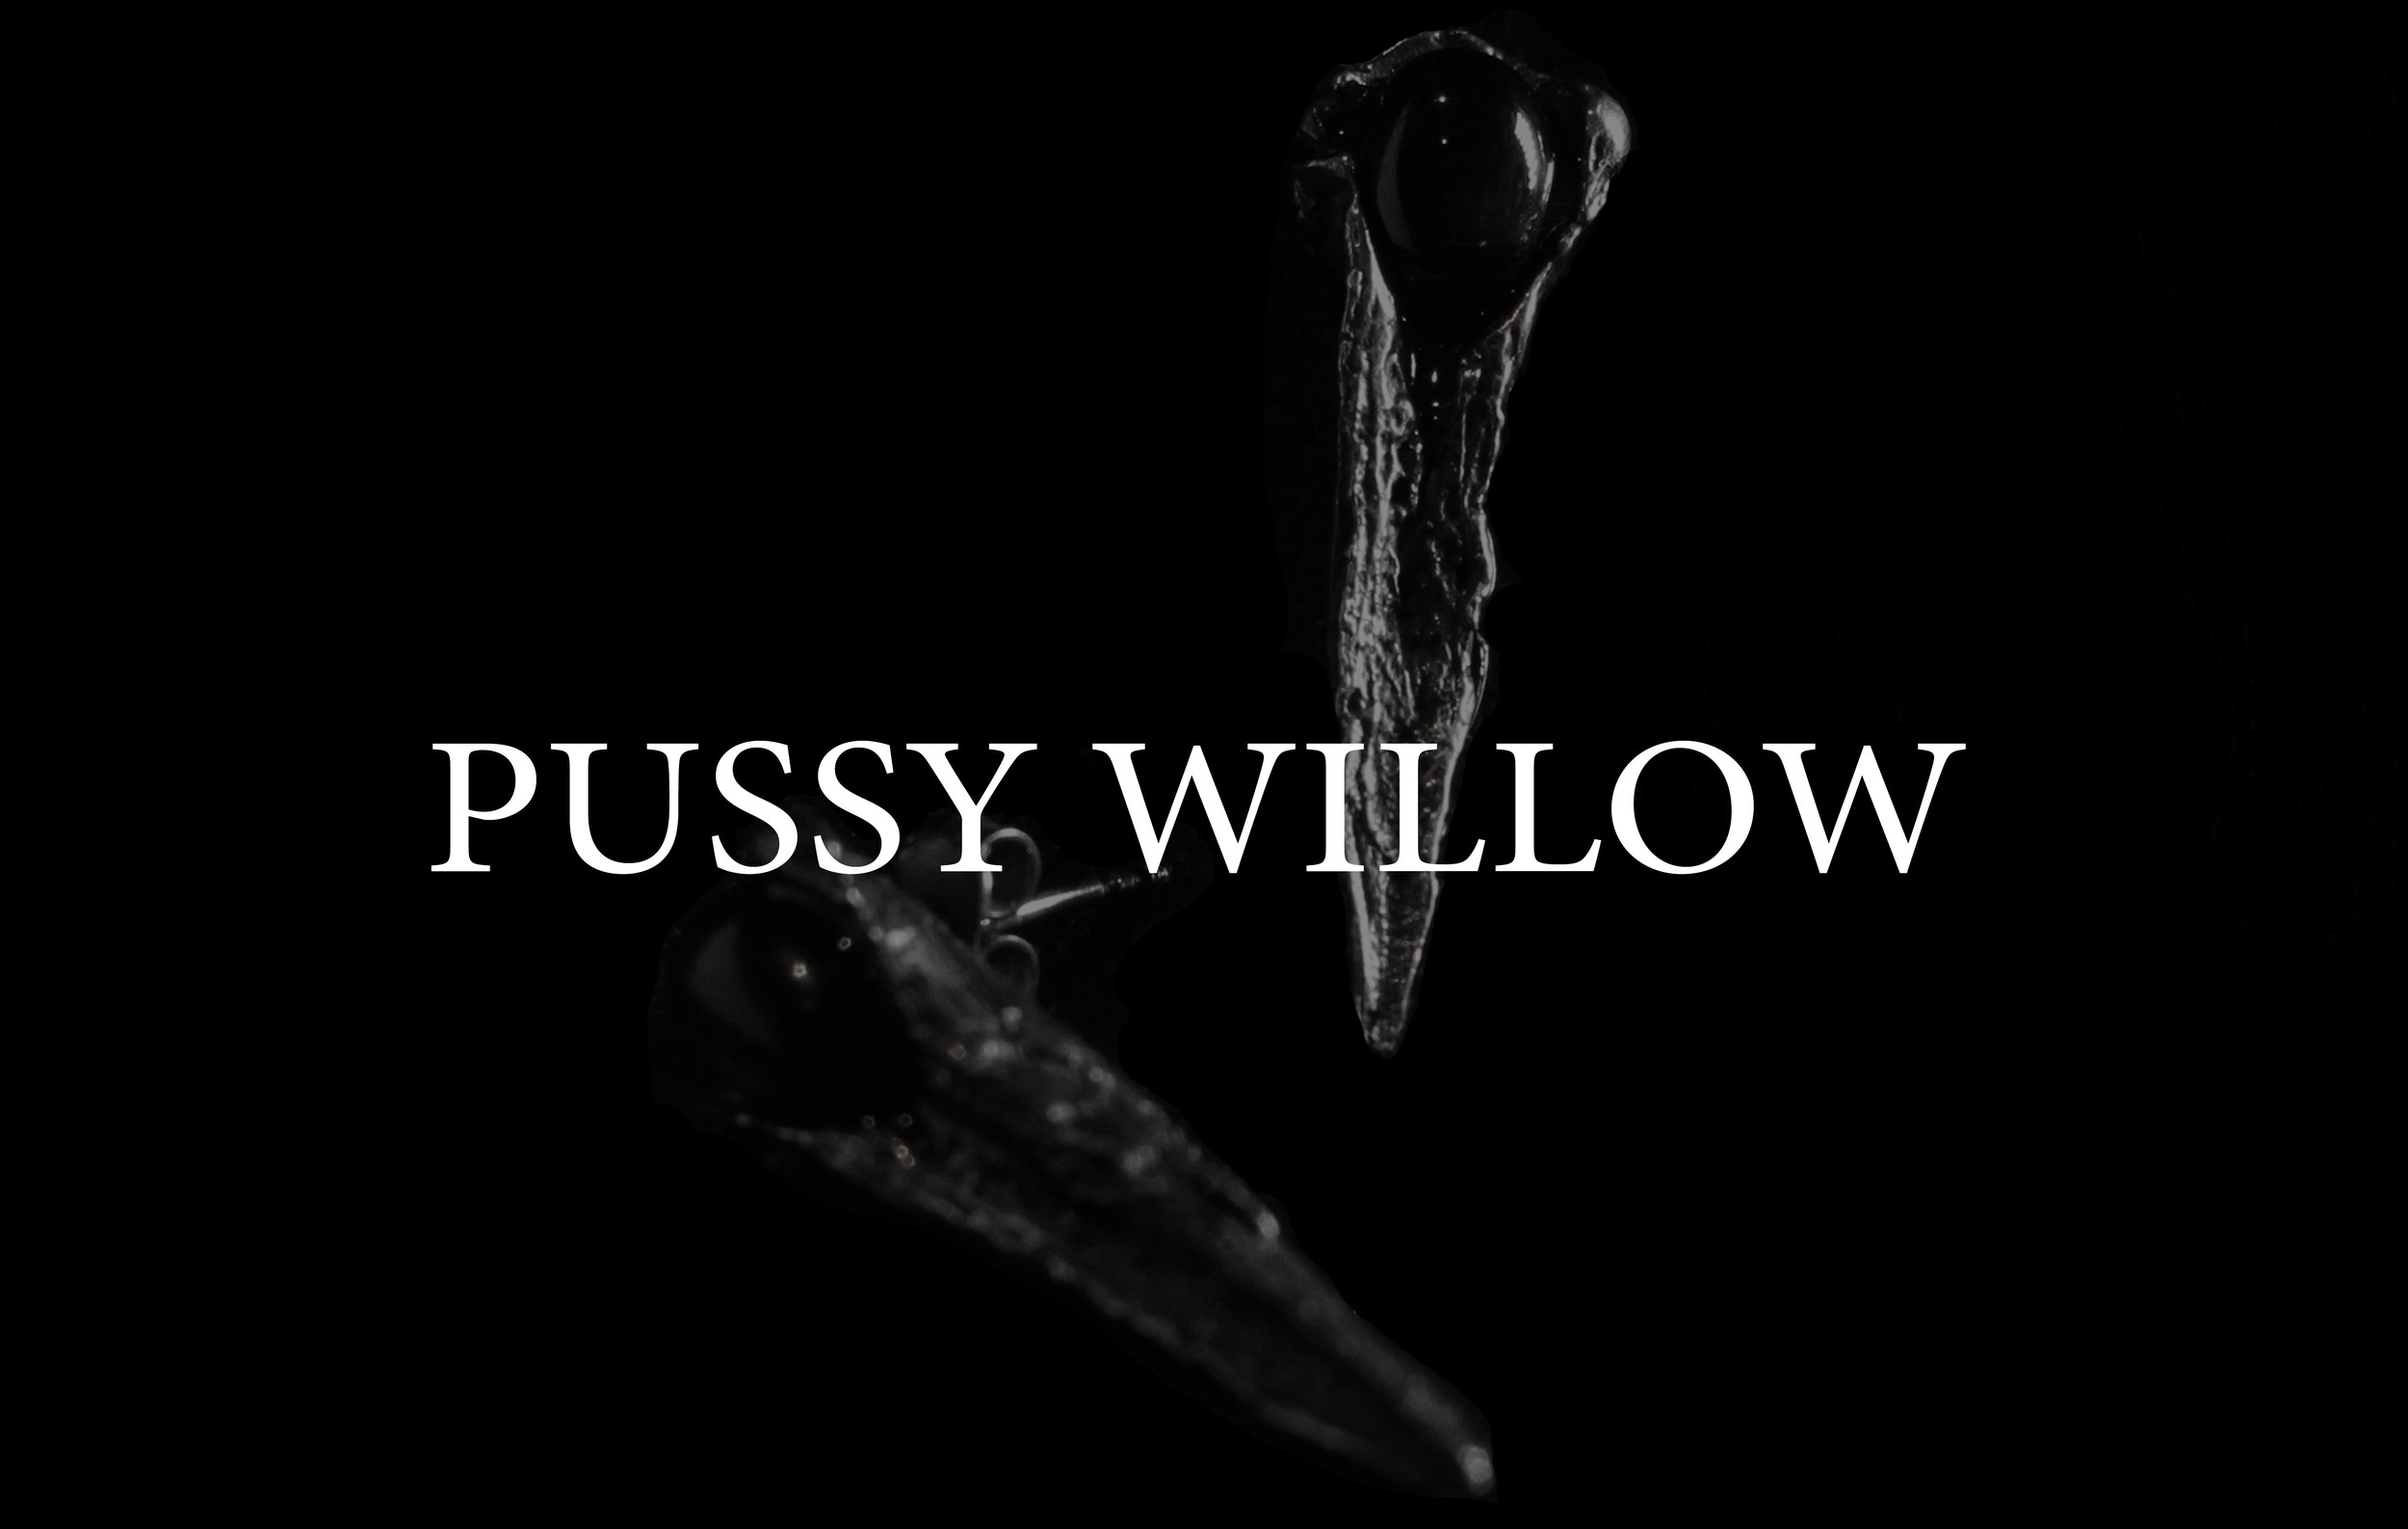 pussywillow.jpg